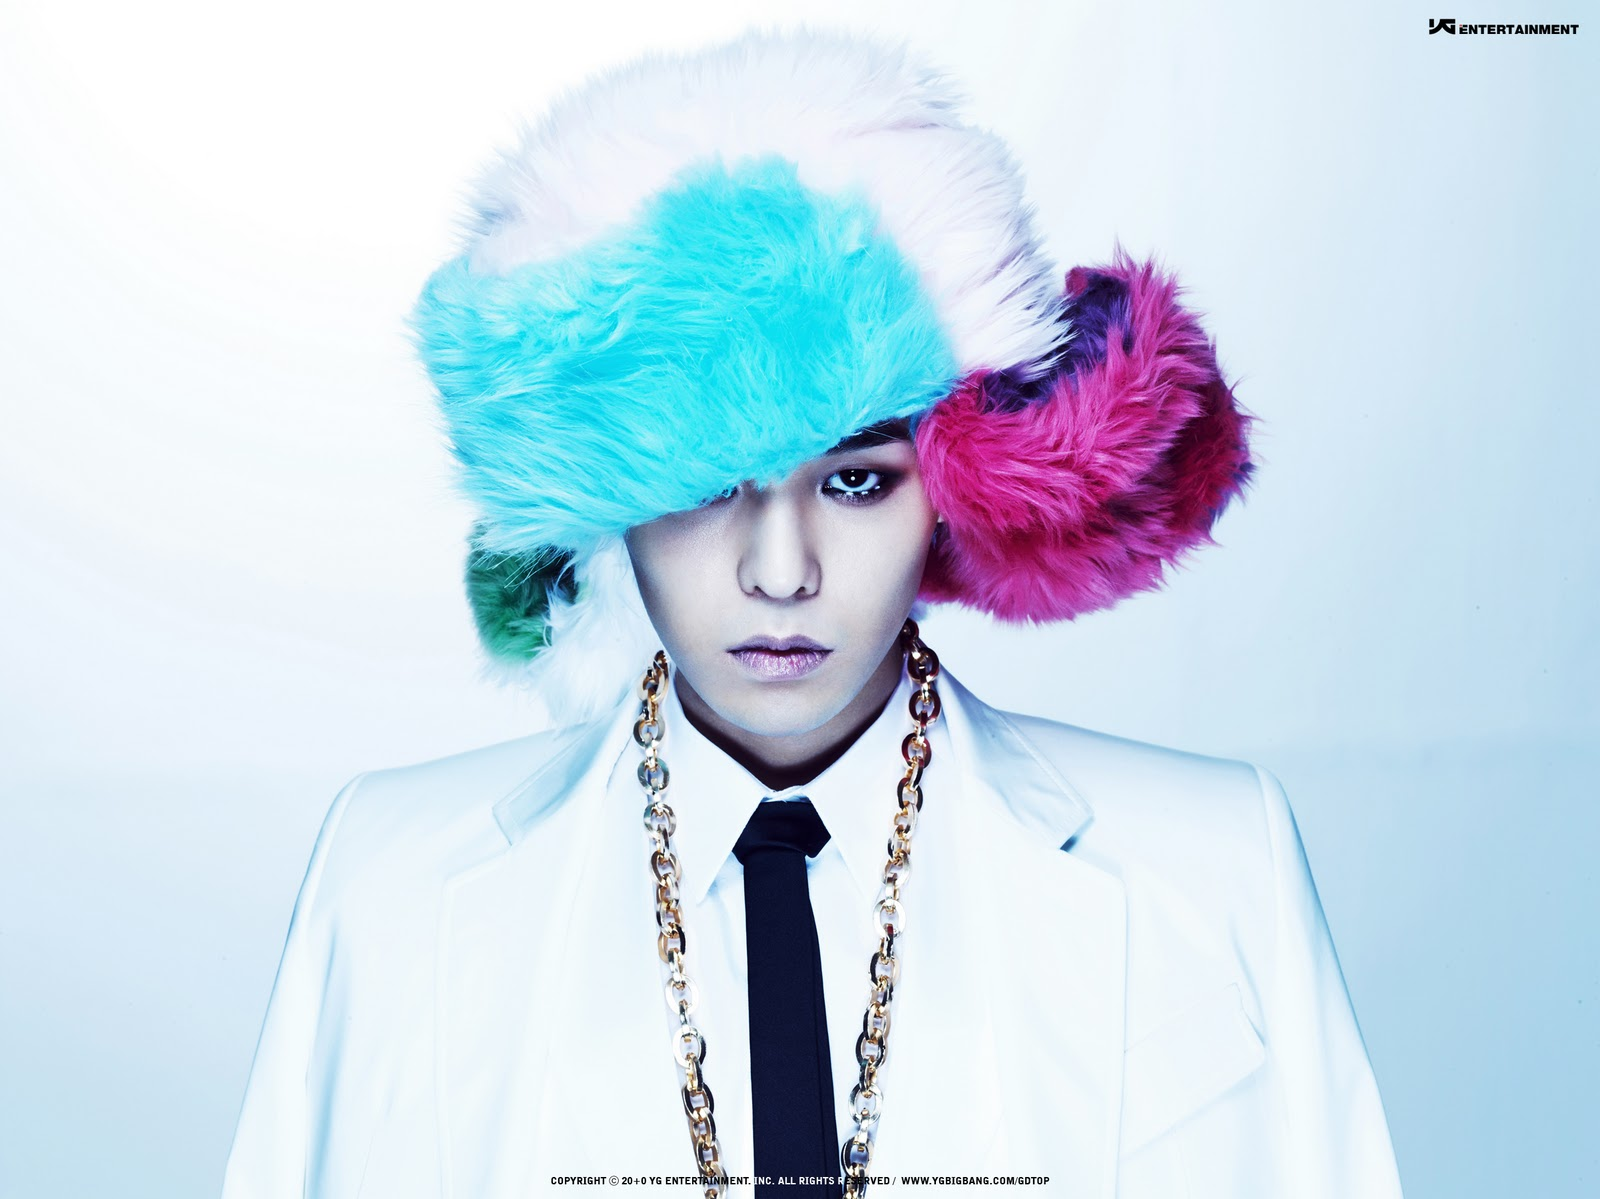 Dragon Wallpaper Hd [pic] gdragon amp; top wallpaper